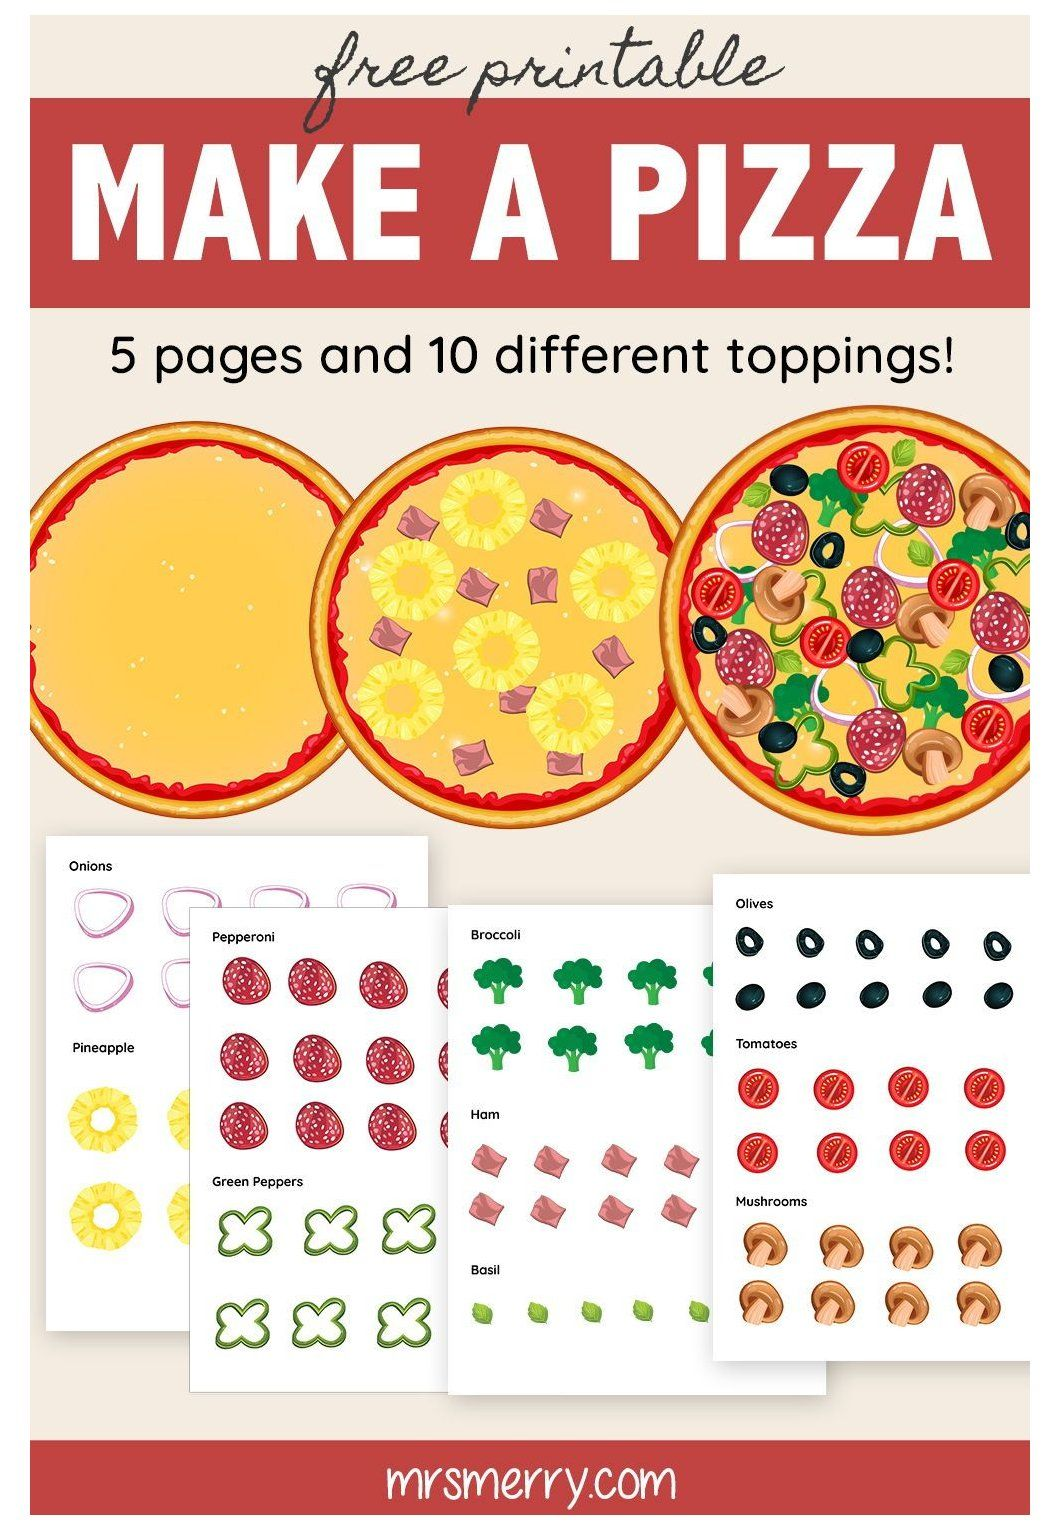 Make A Pizza Printable Cutouts Printable Pizza Toppings Free Printable Build Your Own Pizza 5 Kids Crafts Free How To Make Pizza Free Activities For Kids [ 1530 x 1060 Pixel ]